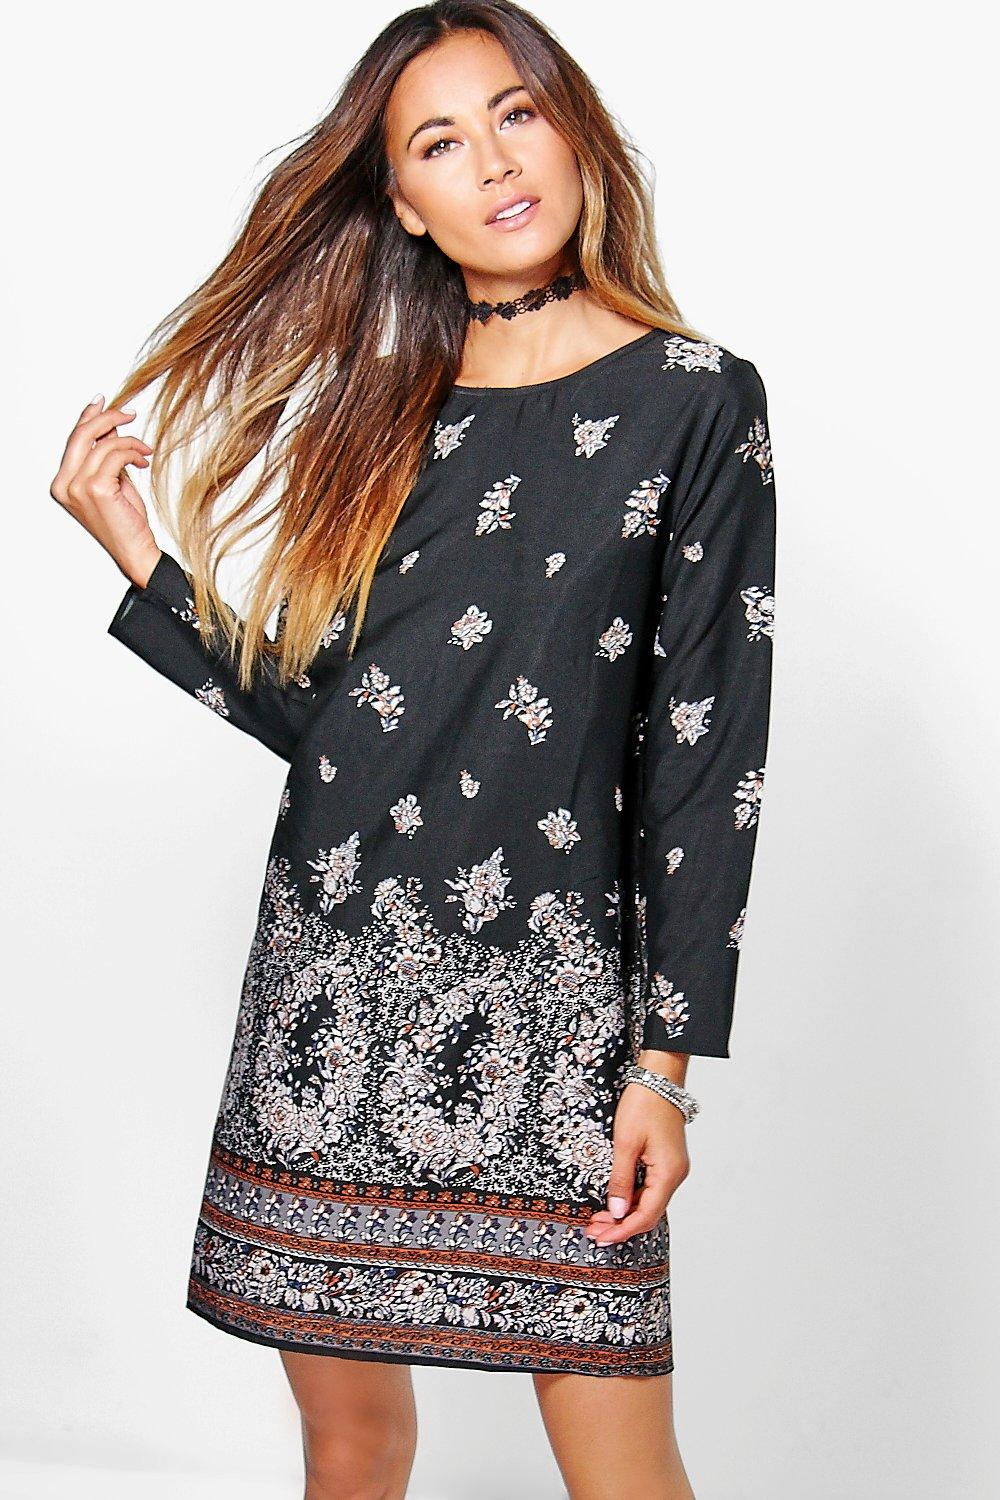 Sahara Paisley Border Long Sleeve Shift Dress